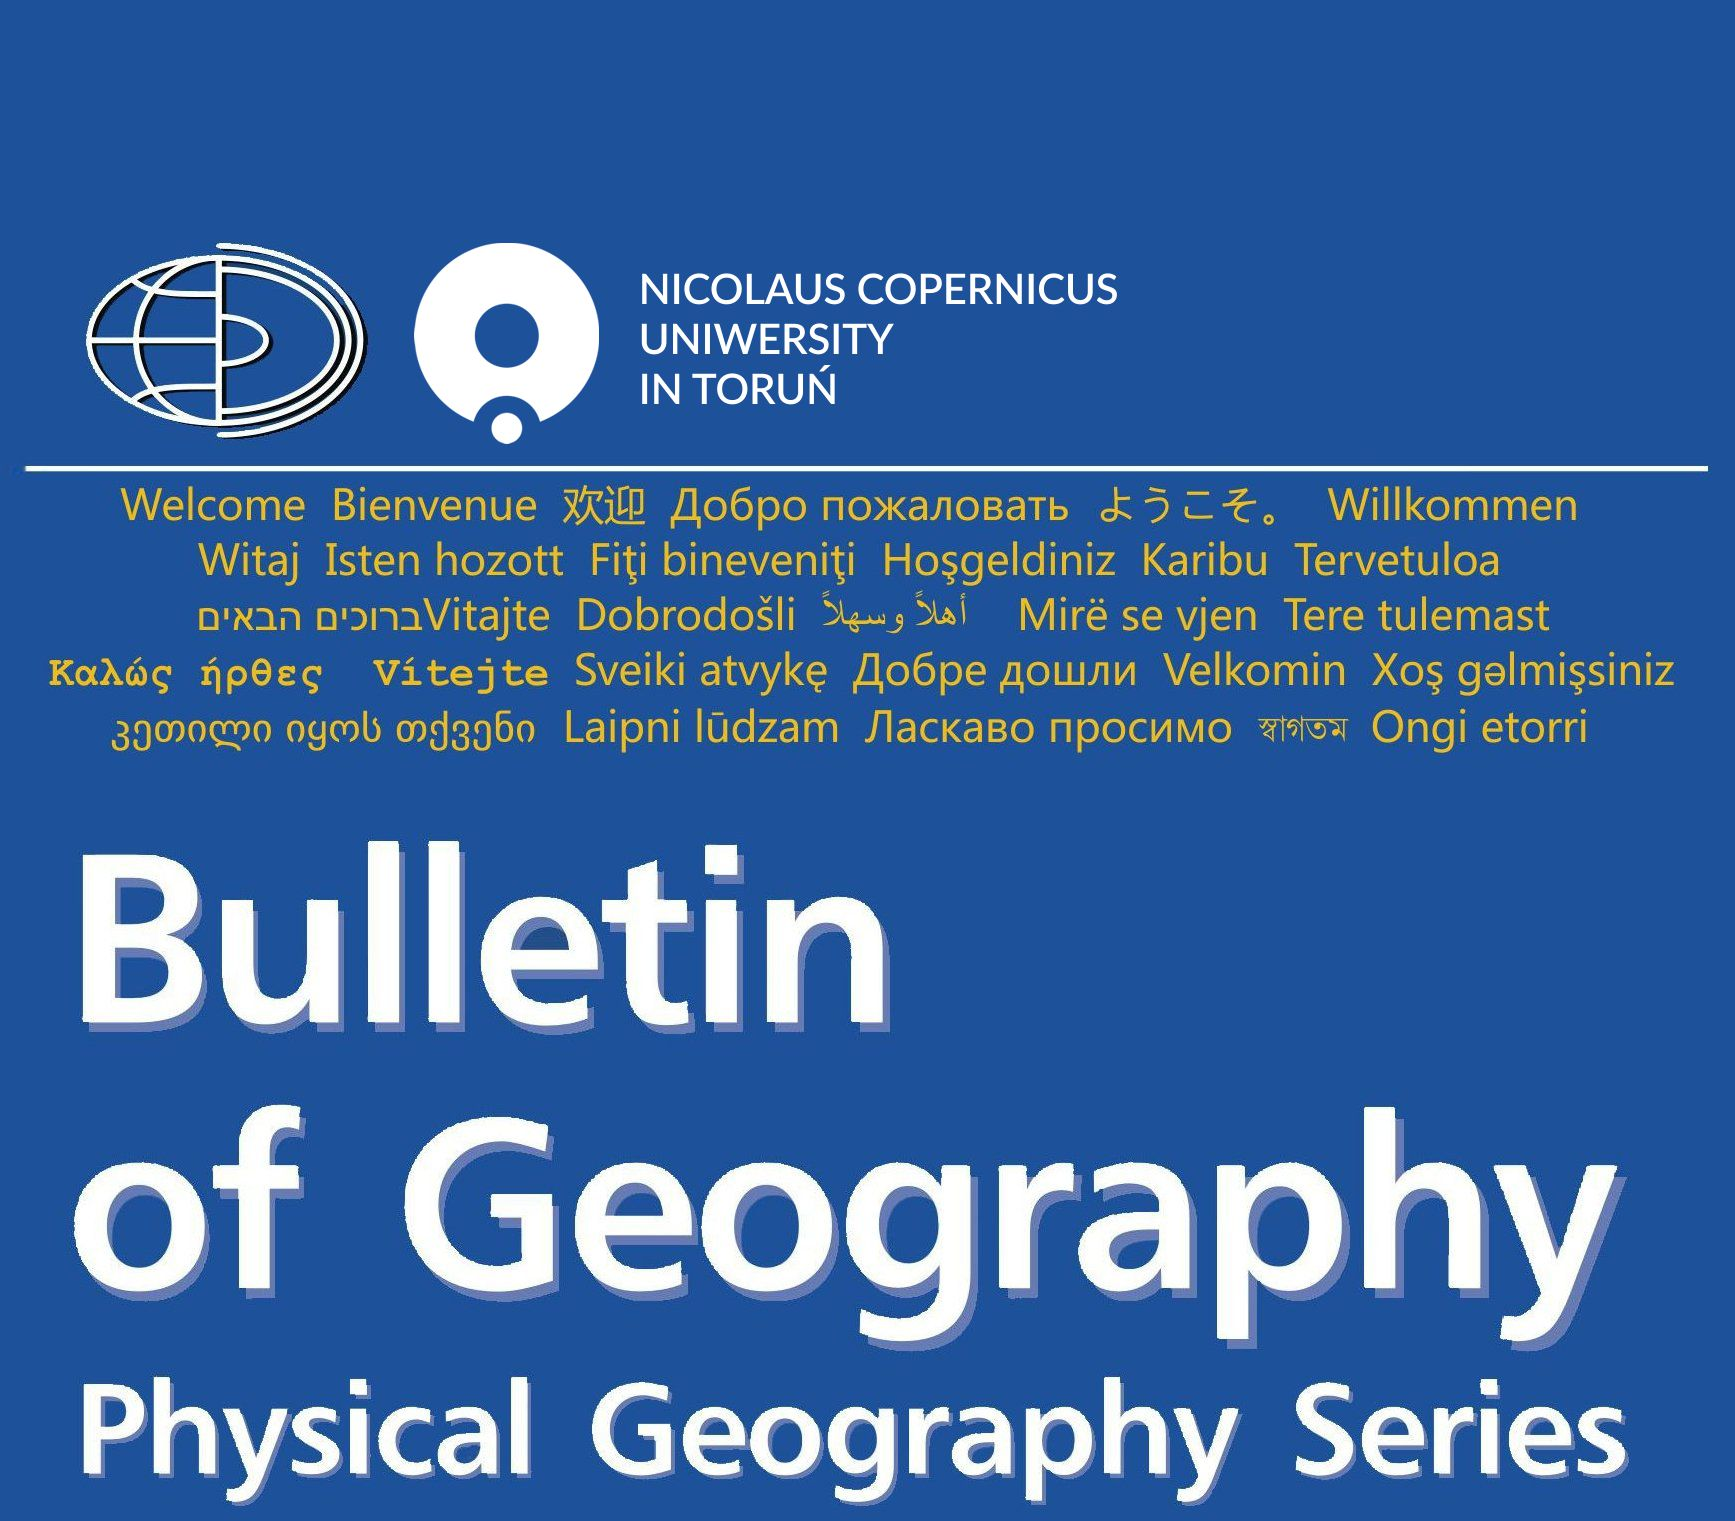 Bulletin of Geography. Physical Geography Series